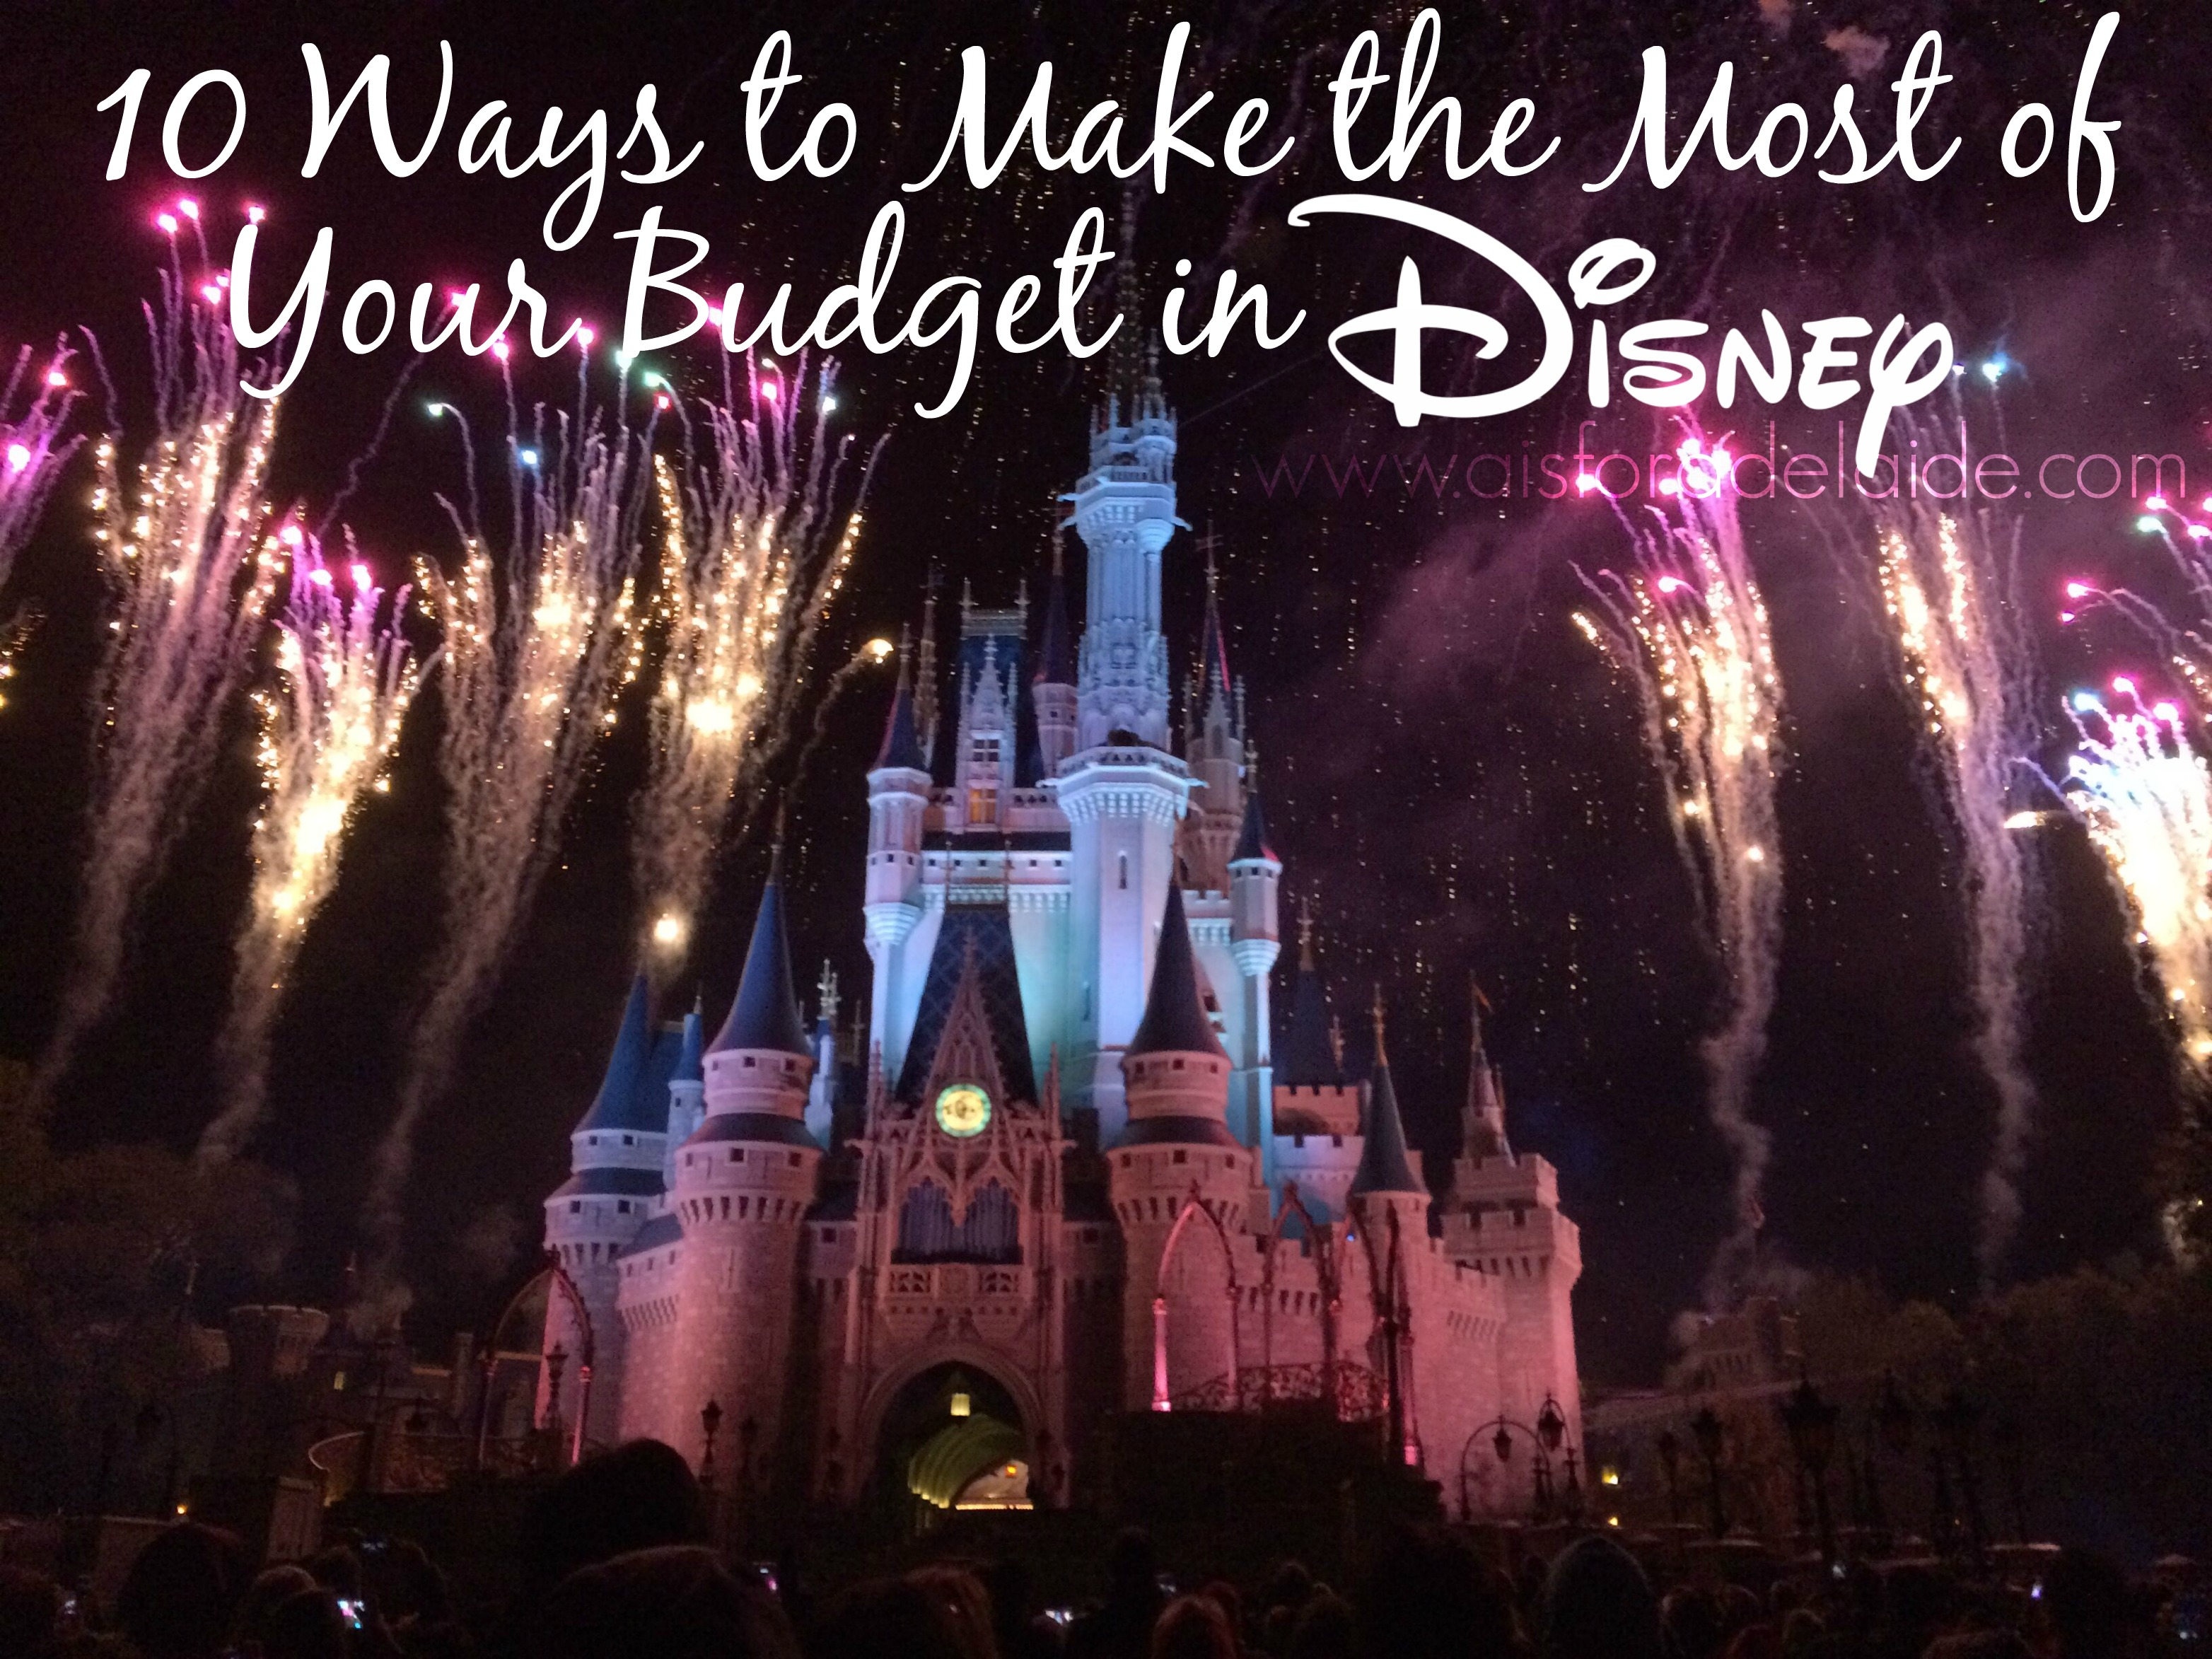 as dreamers do alice in wonder land 10 Ways to Make the Most of Your Budget During Your Walt Disney World Vacation